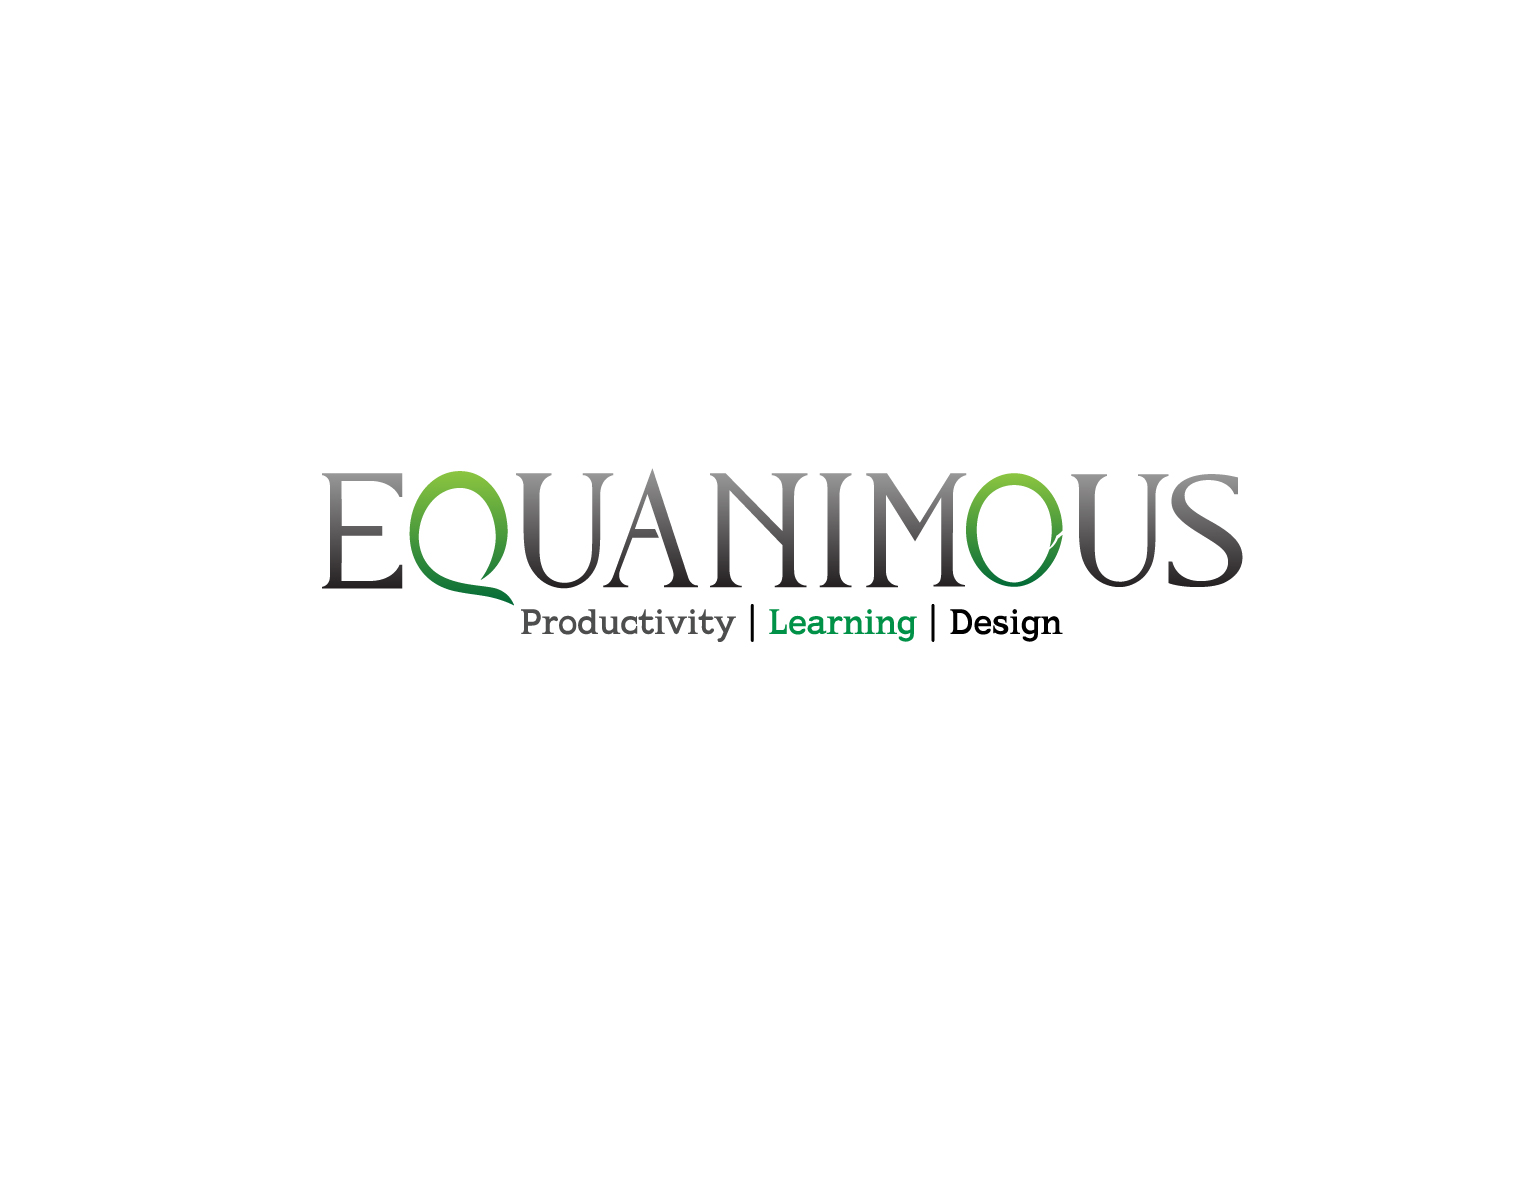 Logo Design by 3draw - Entry No. 412 in the Logo Design Contest Logo Design : EQUANIMOUS : Productivity | Learning | Design.